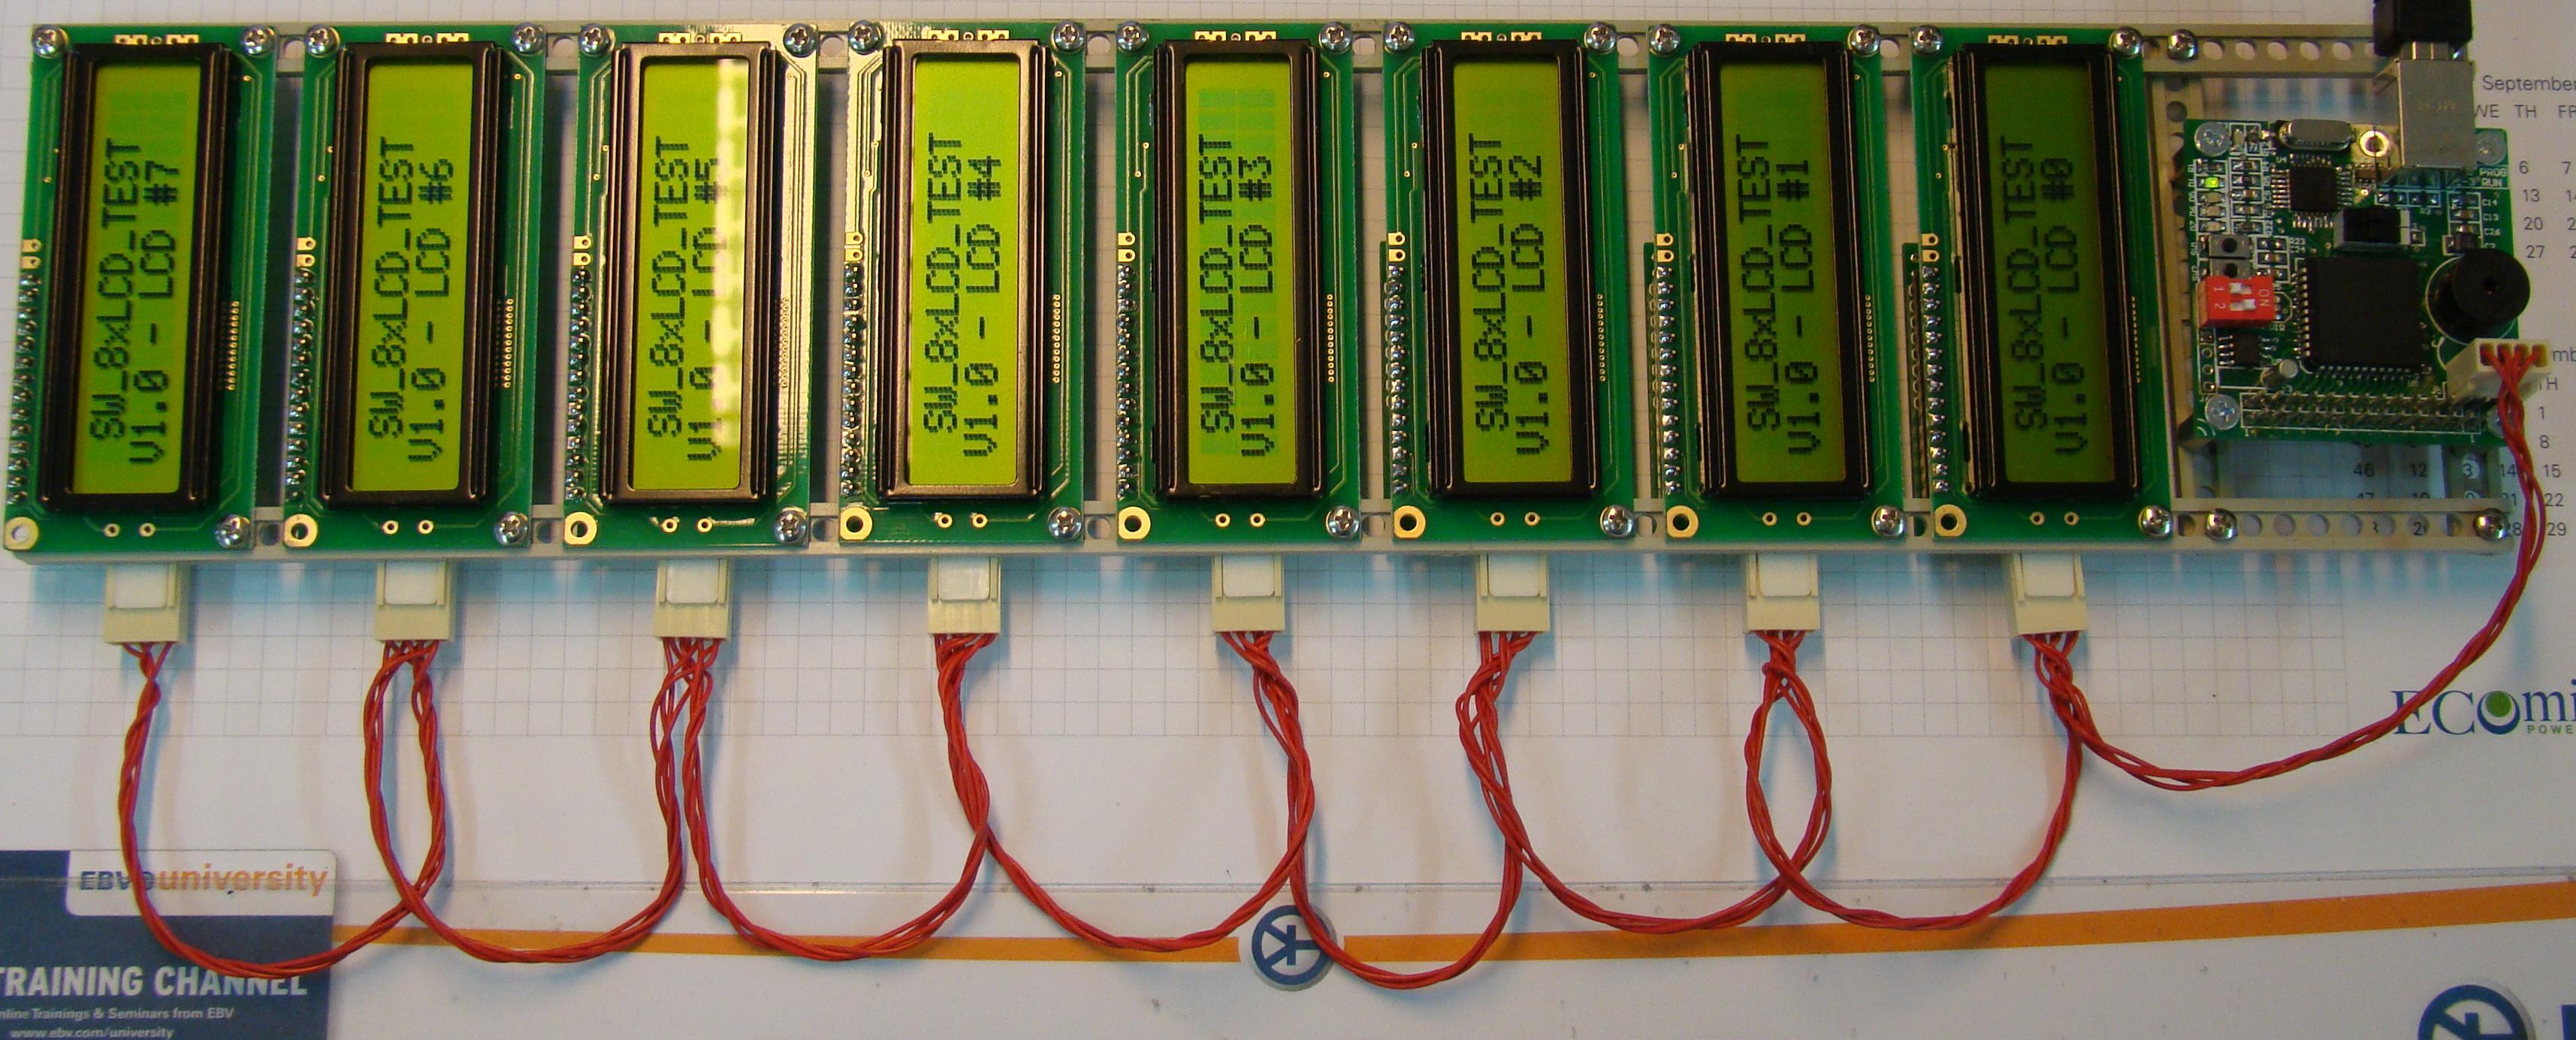 Interface 8 LCD displays with only two wires